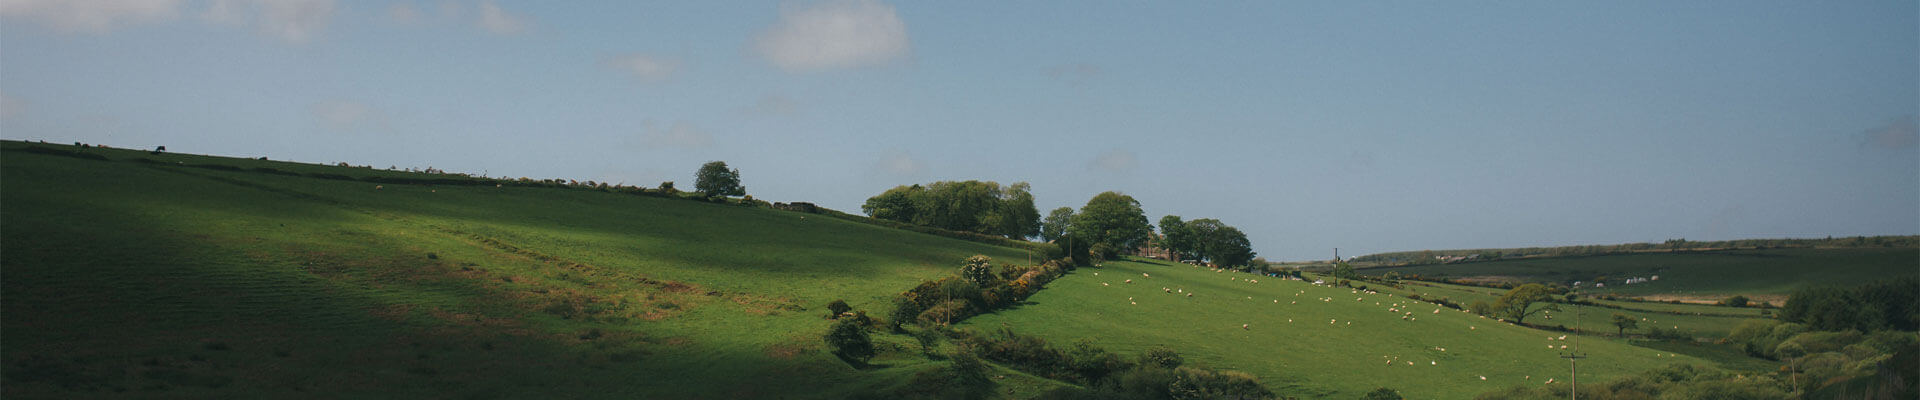 Photo of the countryside around Tregulland